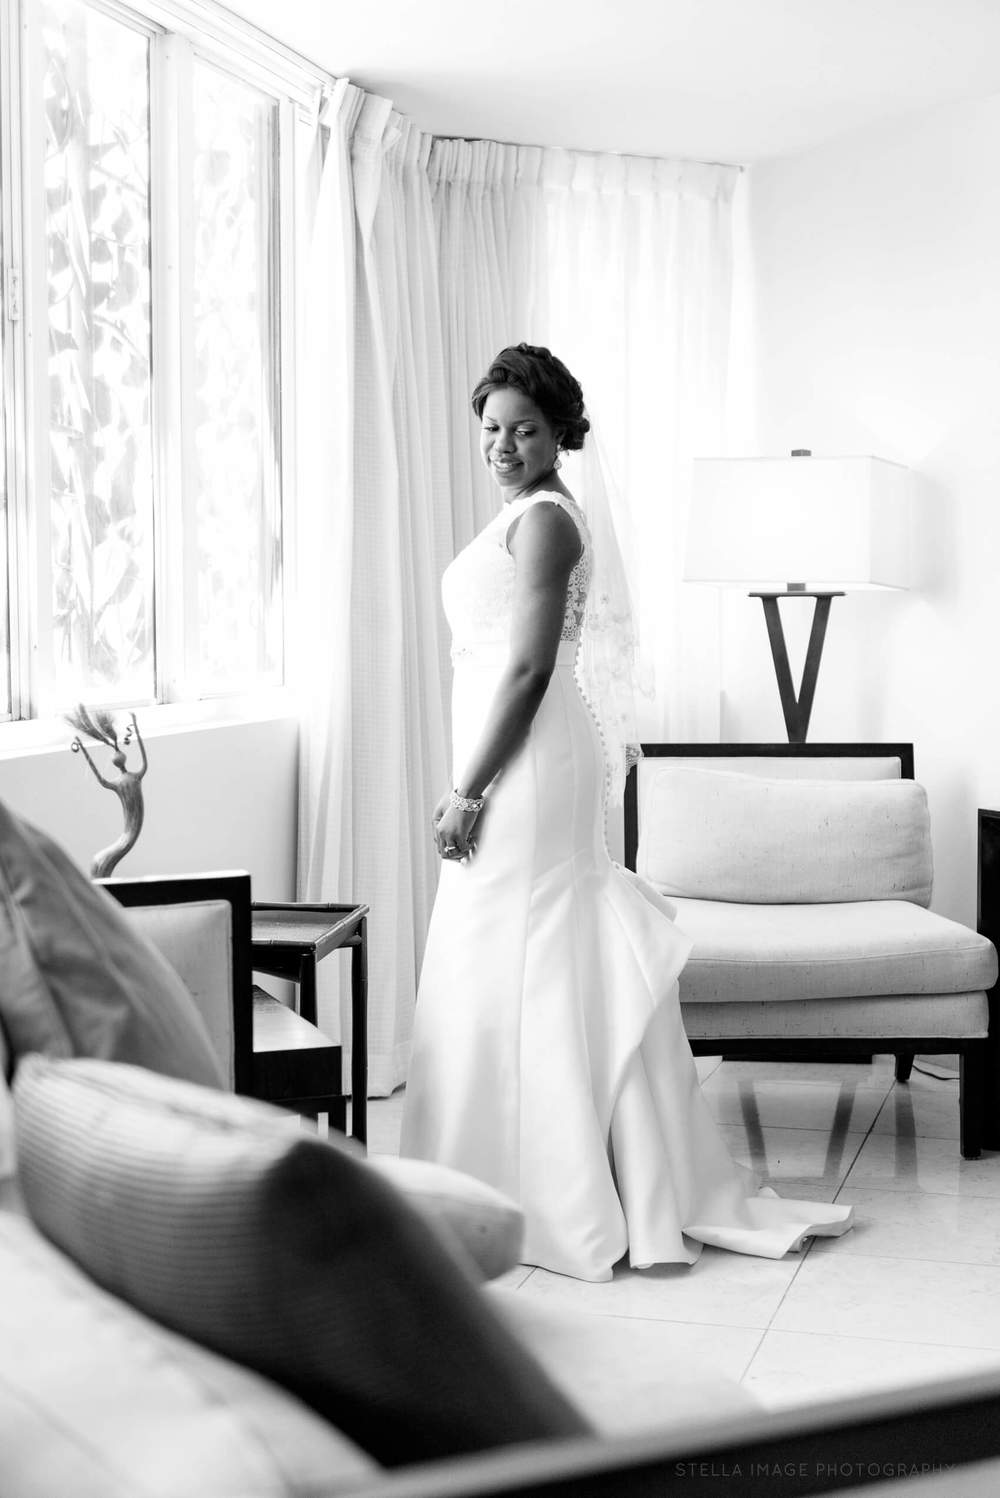 Bride poses in front of window in wedding gown at the Mutiny hotel in Coral Gables, Miami.